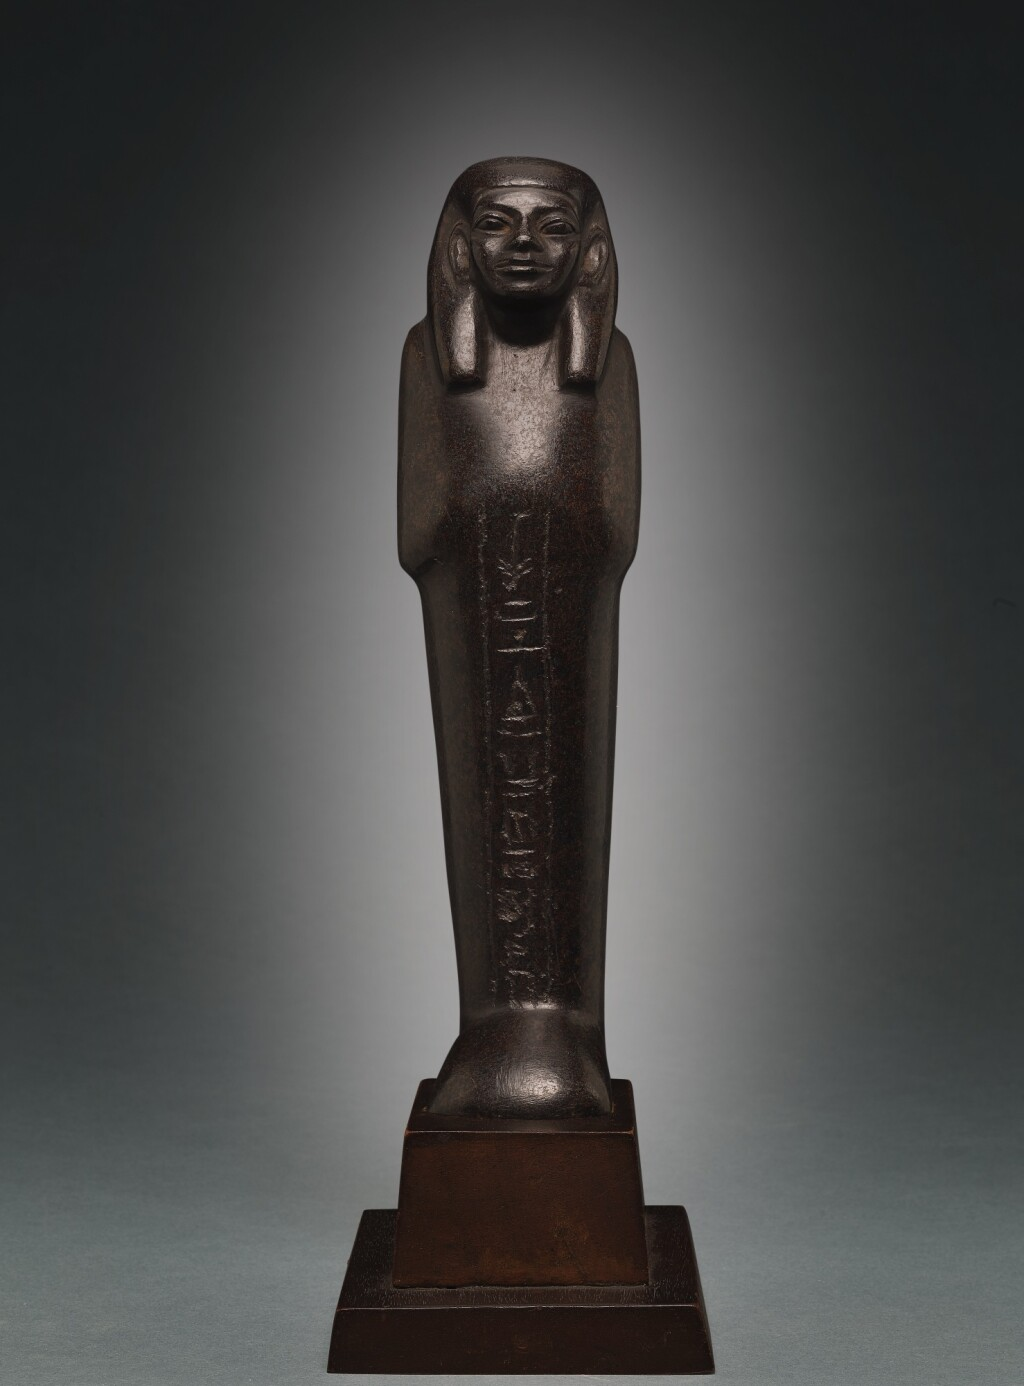 AN EGYPTIAN BROWN SERPENTINE USHABTI OF NEDJEM-IB, LATE 12TH/13TH DYNASTY, CIRCA 1800-1640 B.C.